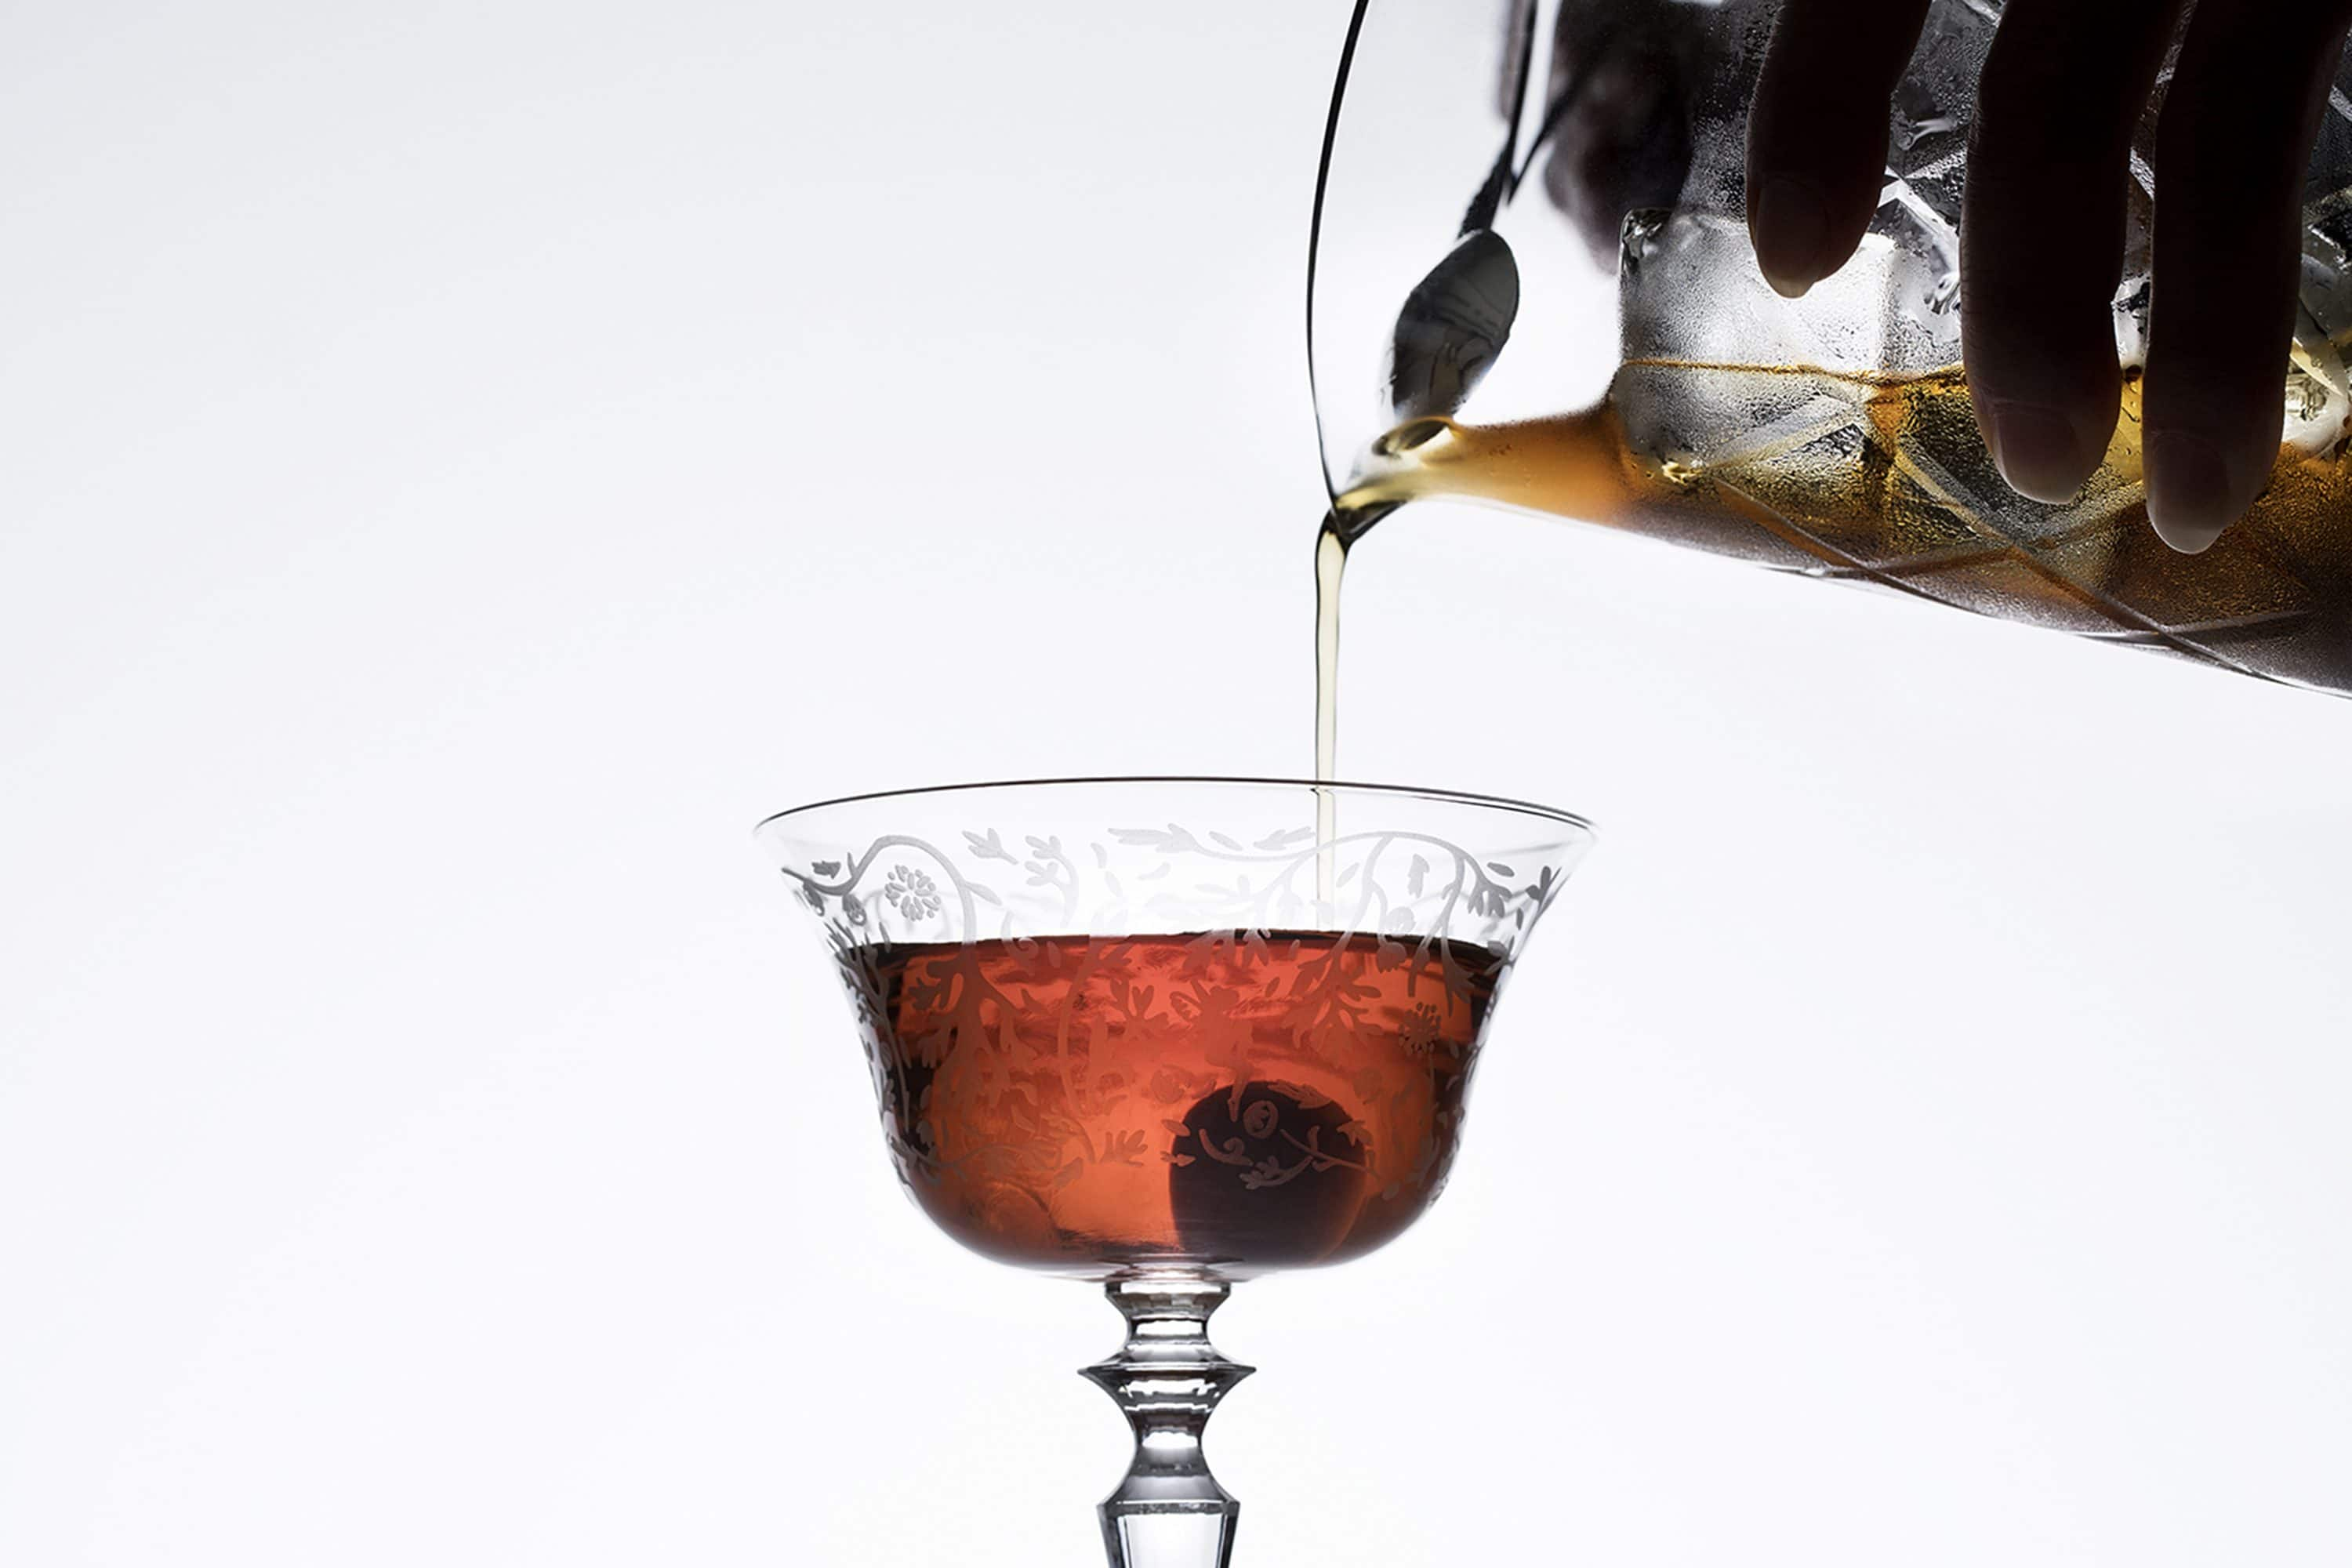 Manhattan cocktail being poured into a coupe glass